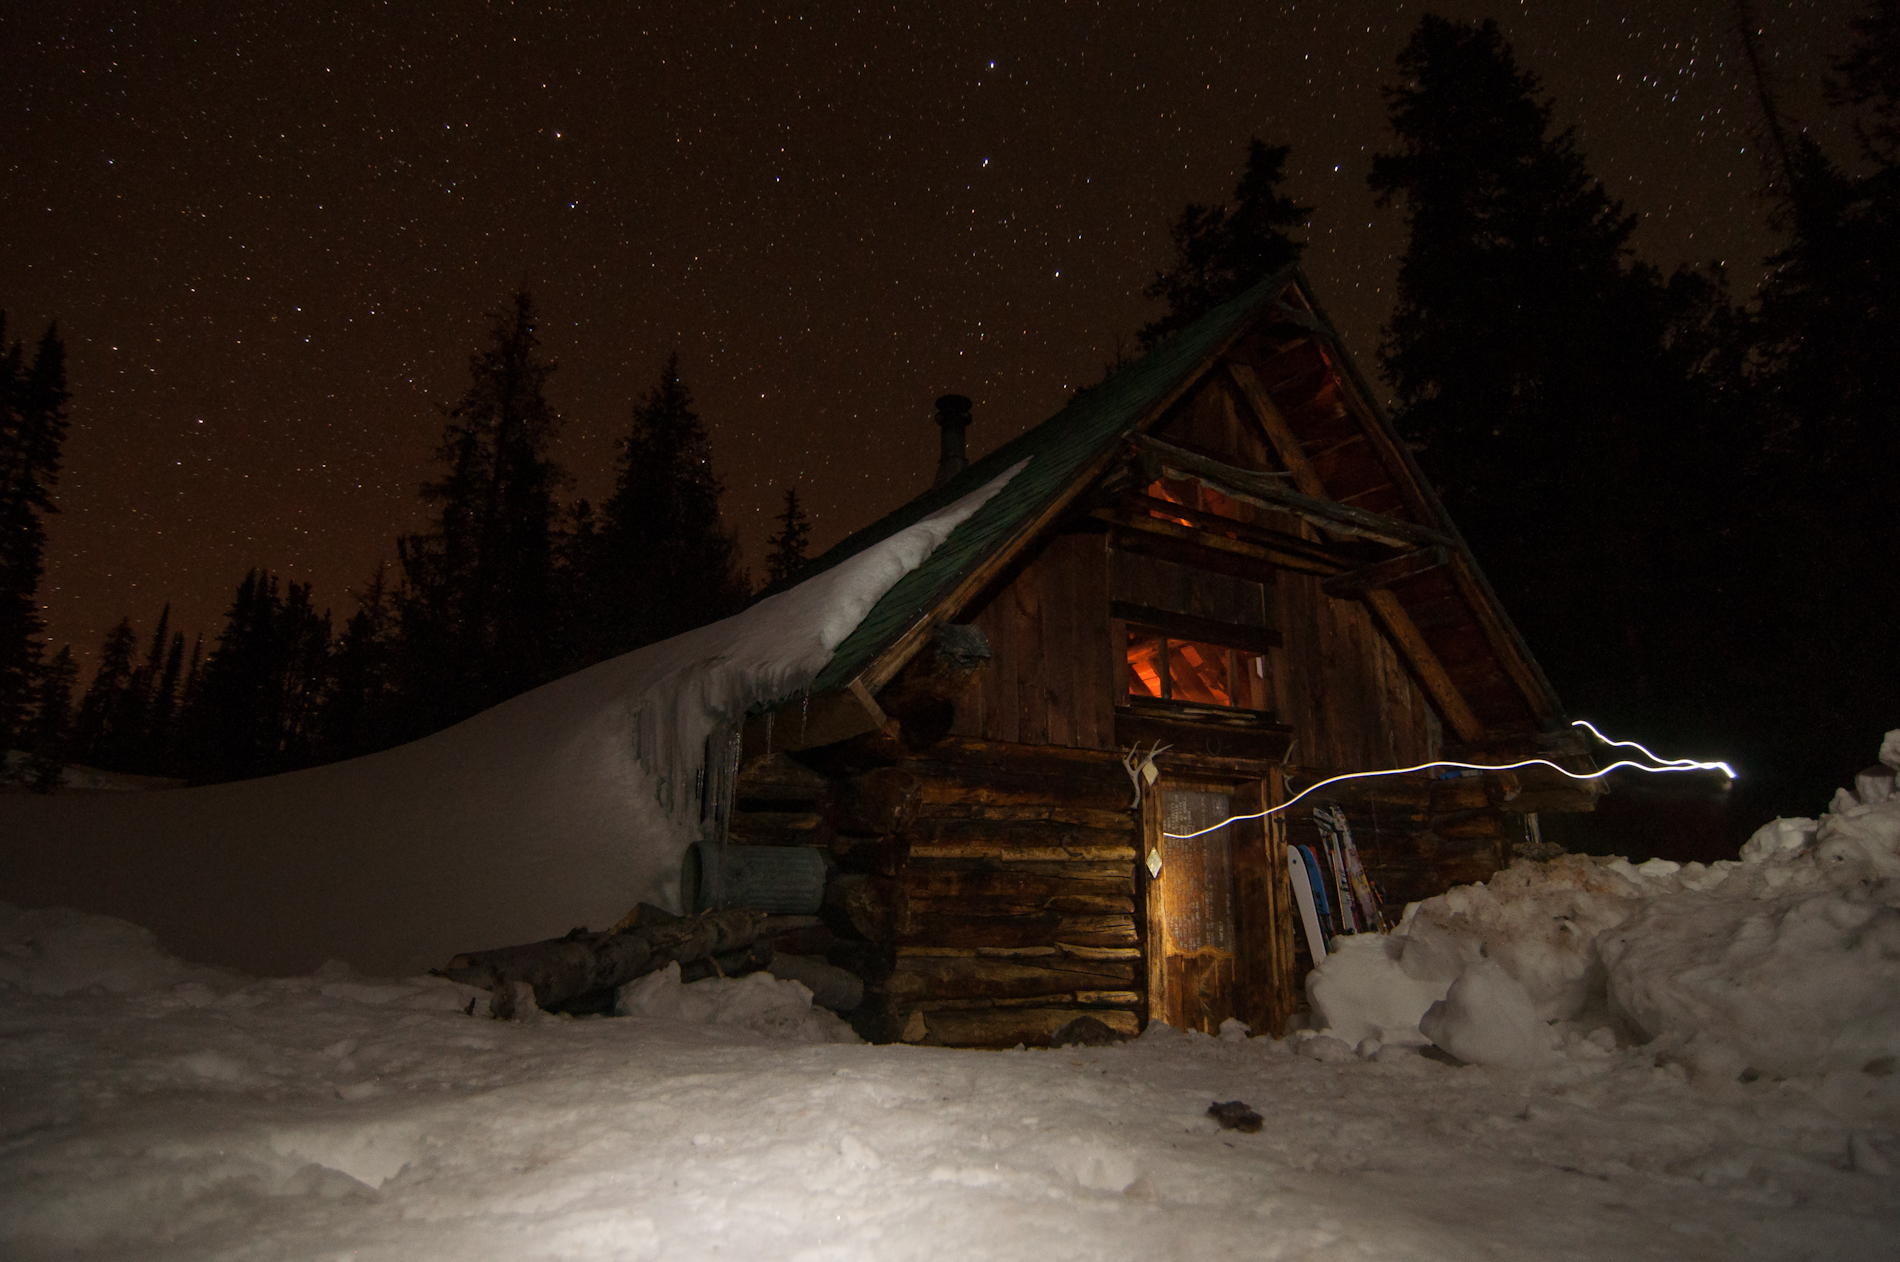 Goodwin Lake Ski Cabin, Gros Ventre Mountains